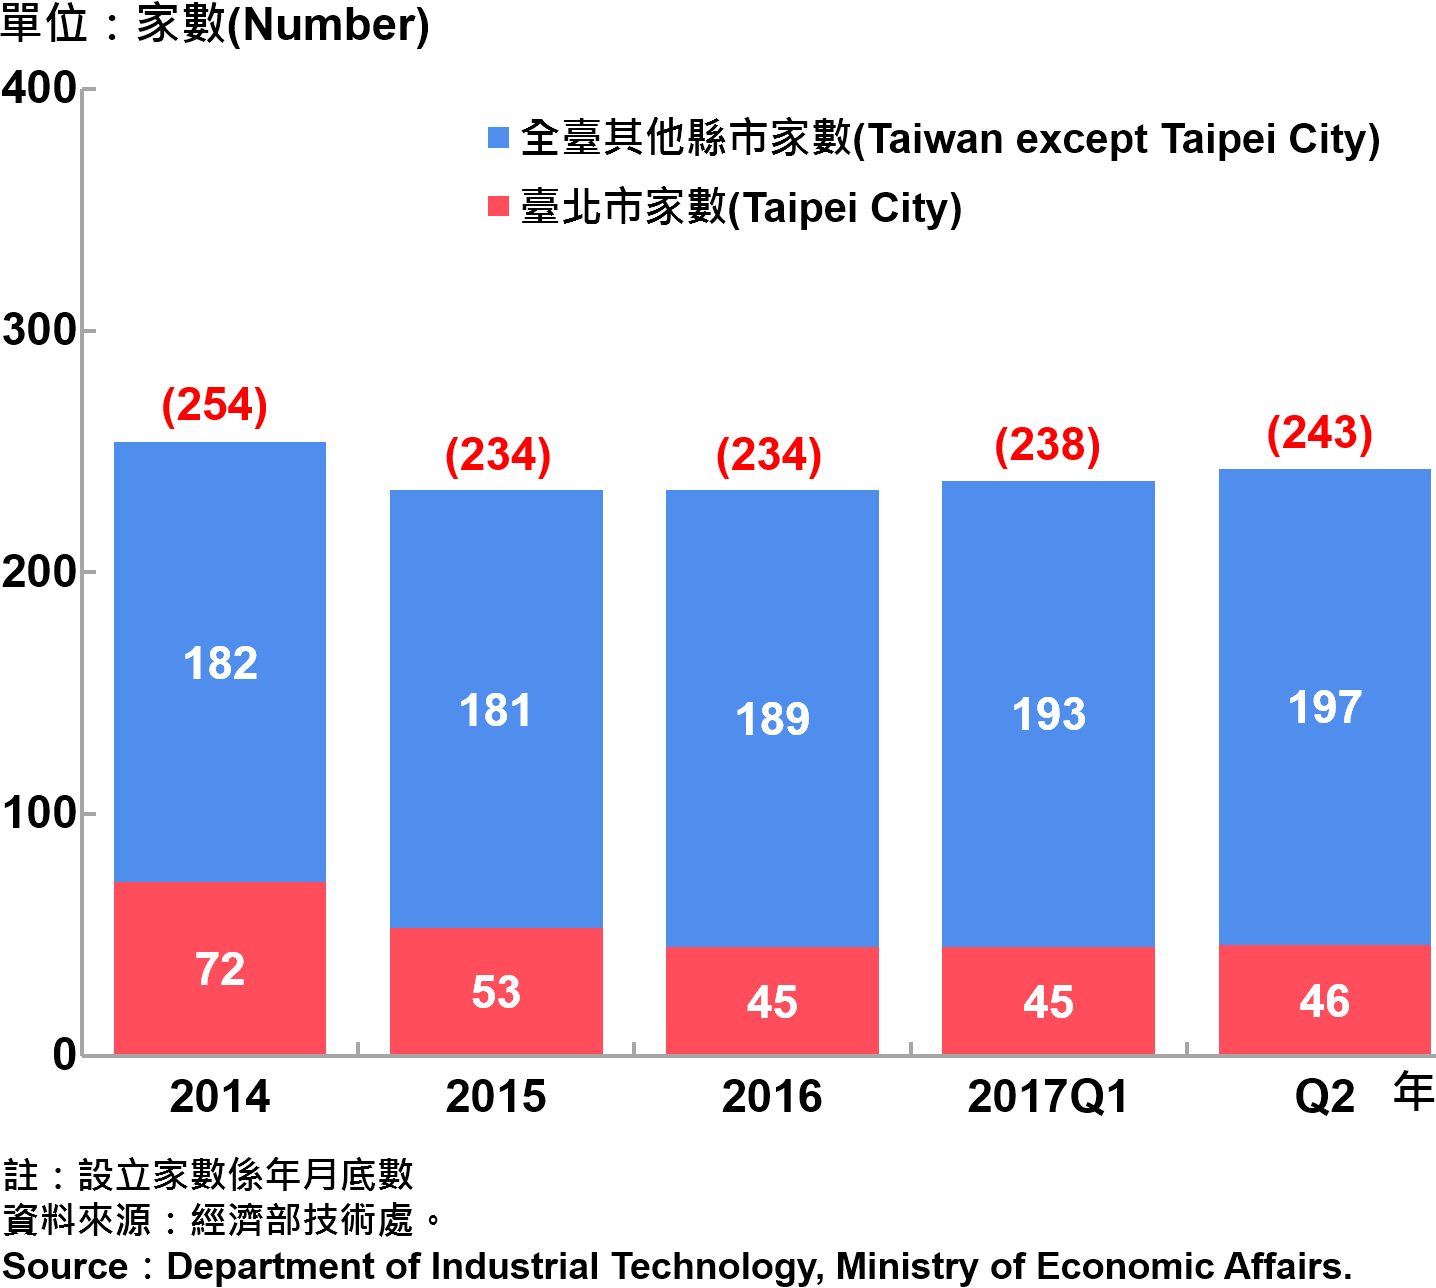 圖16、臺北市研發中心設立家數—2017Q2 Number of R&D Centers in Taipei City—2017Q2